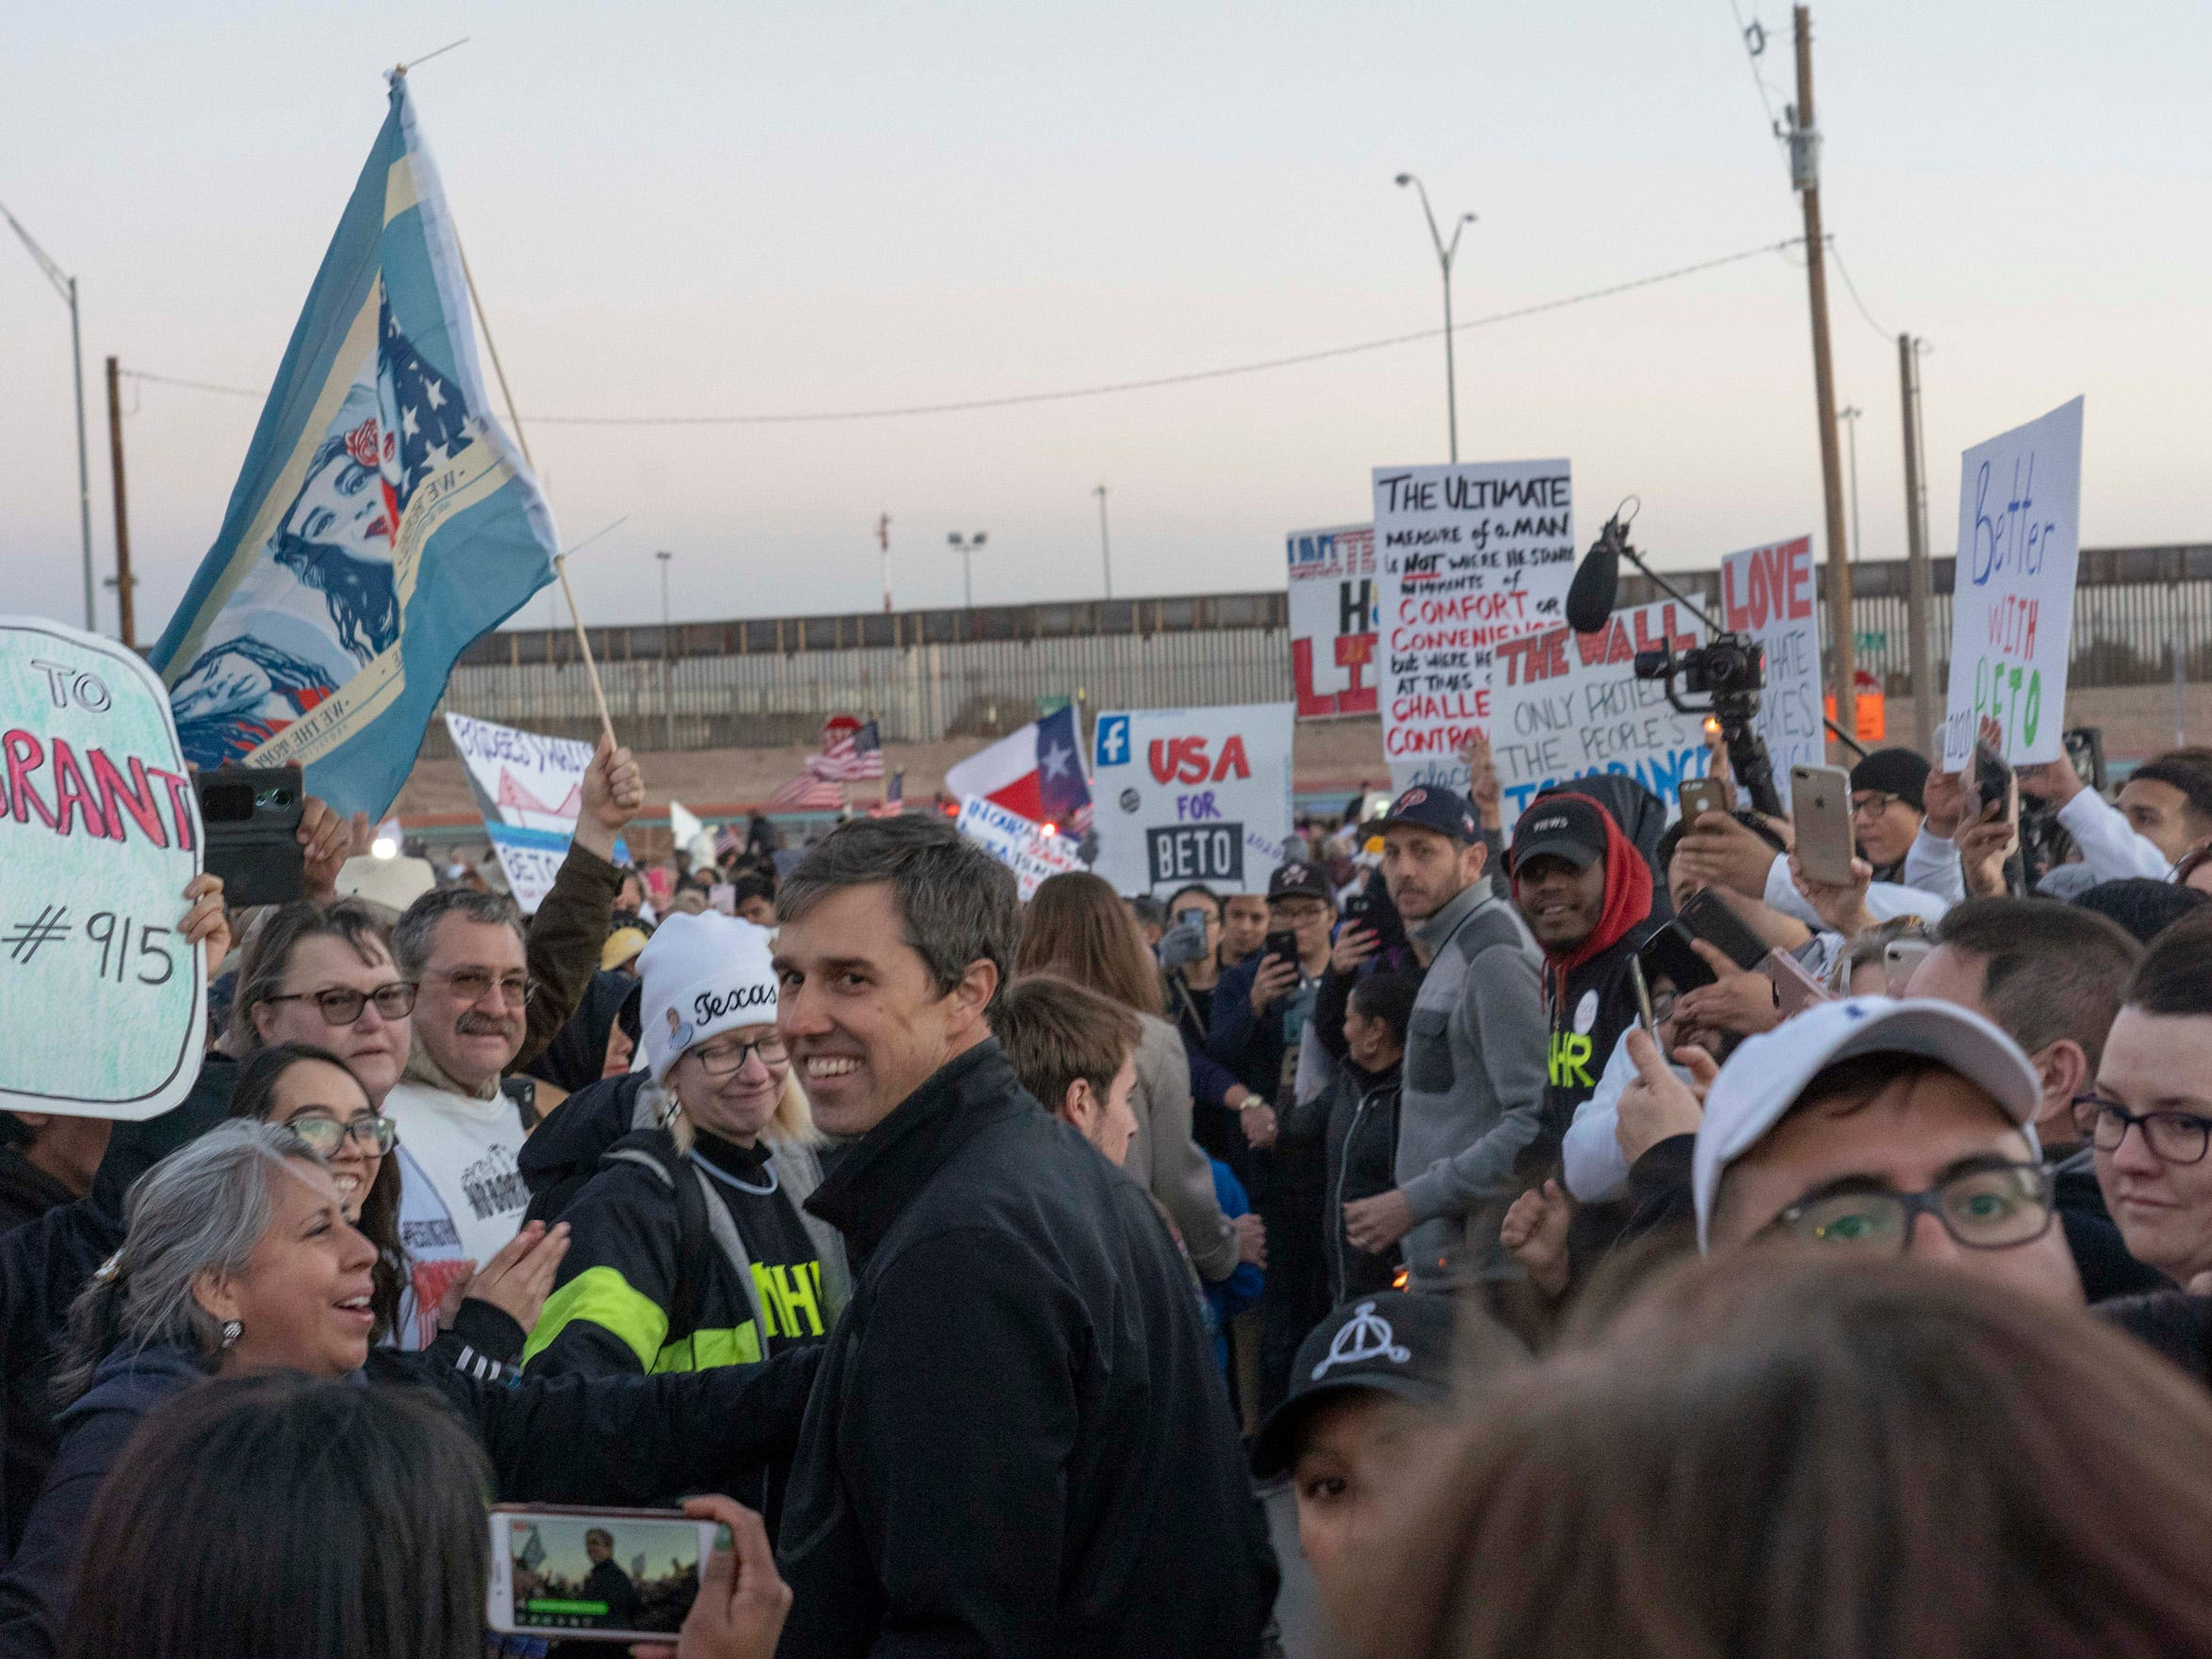 2/11/19 5:52:49 PM -- El Paso, TX, U.S.A  -- A counter-rally led by former U.S. Senate candidate Beto O'Rourke joined the March for Truth with hundreds of people along with Border Network for Human Rights, Women's March, to protest against President Trump campaign rally near El Paso County Coliseum on Feb. 11, 2019.